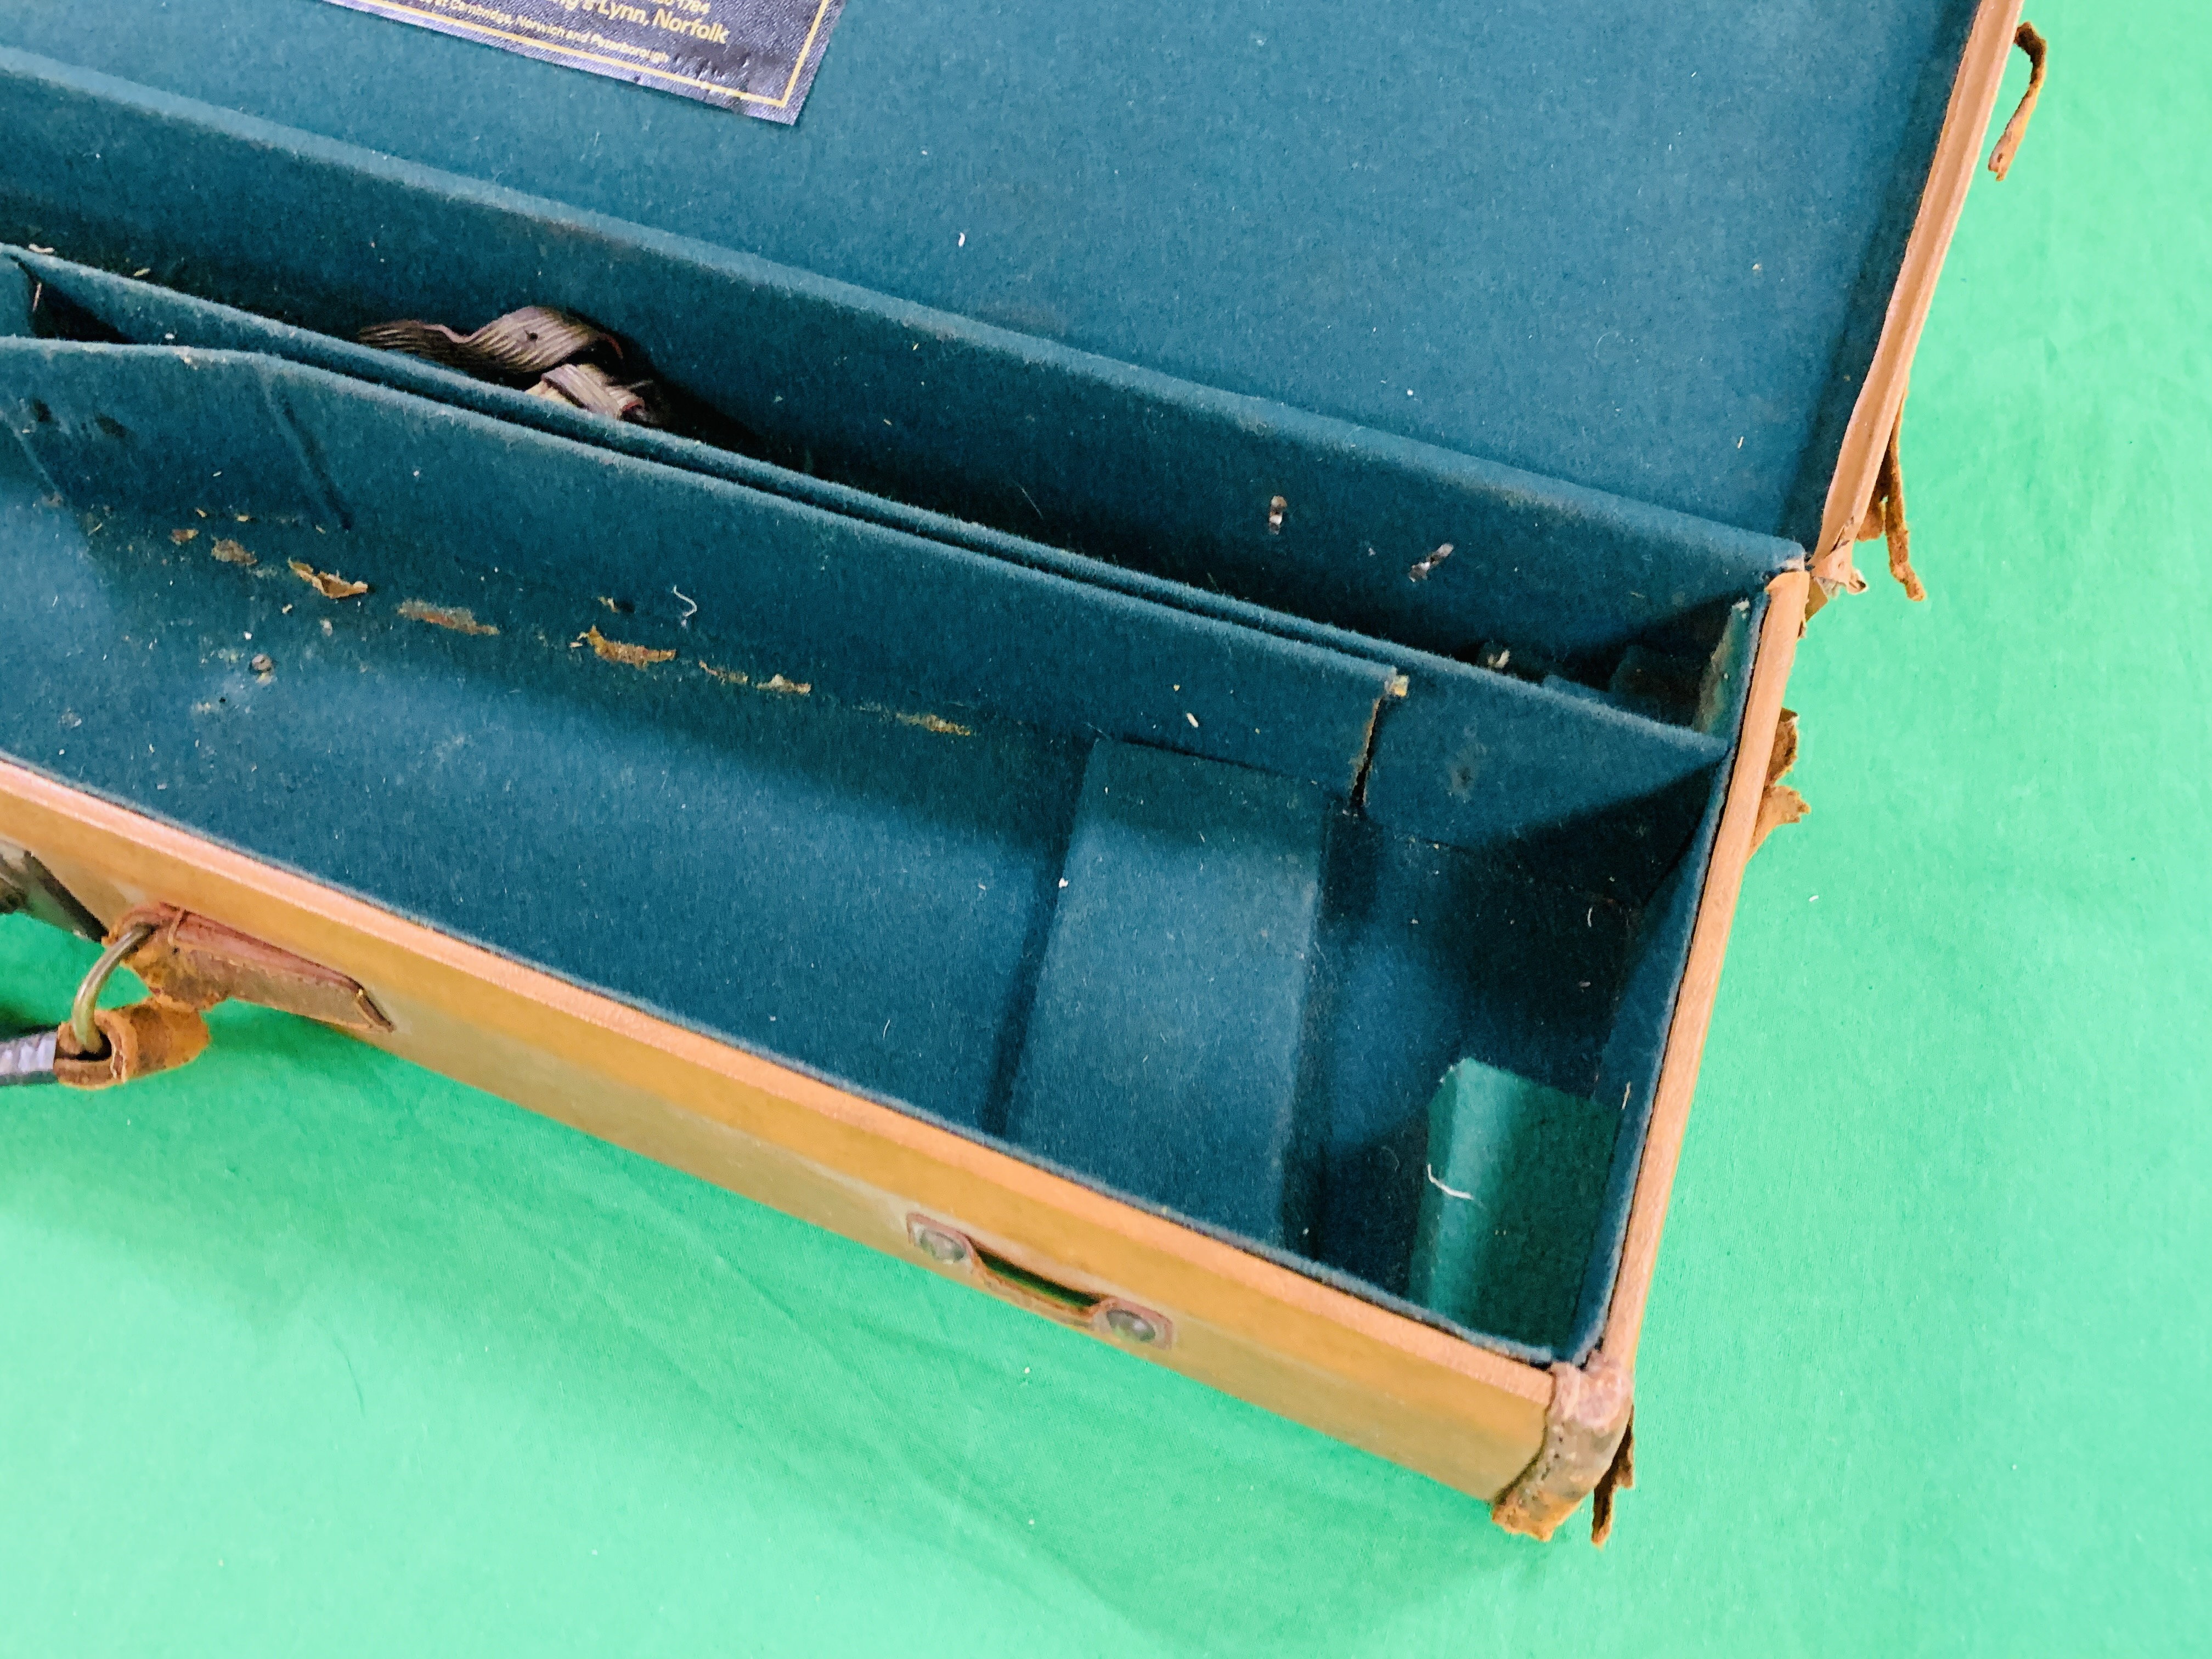 """LEATHERETTE 28 / 30"""" CASE WITH GALLYON OF KINGFISHER LABEL INSIDE - Image 7 of 11"""